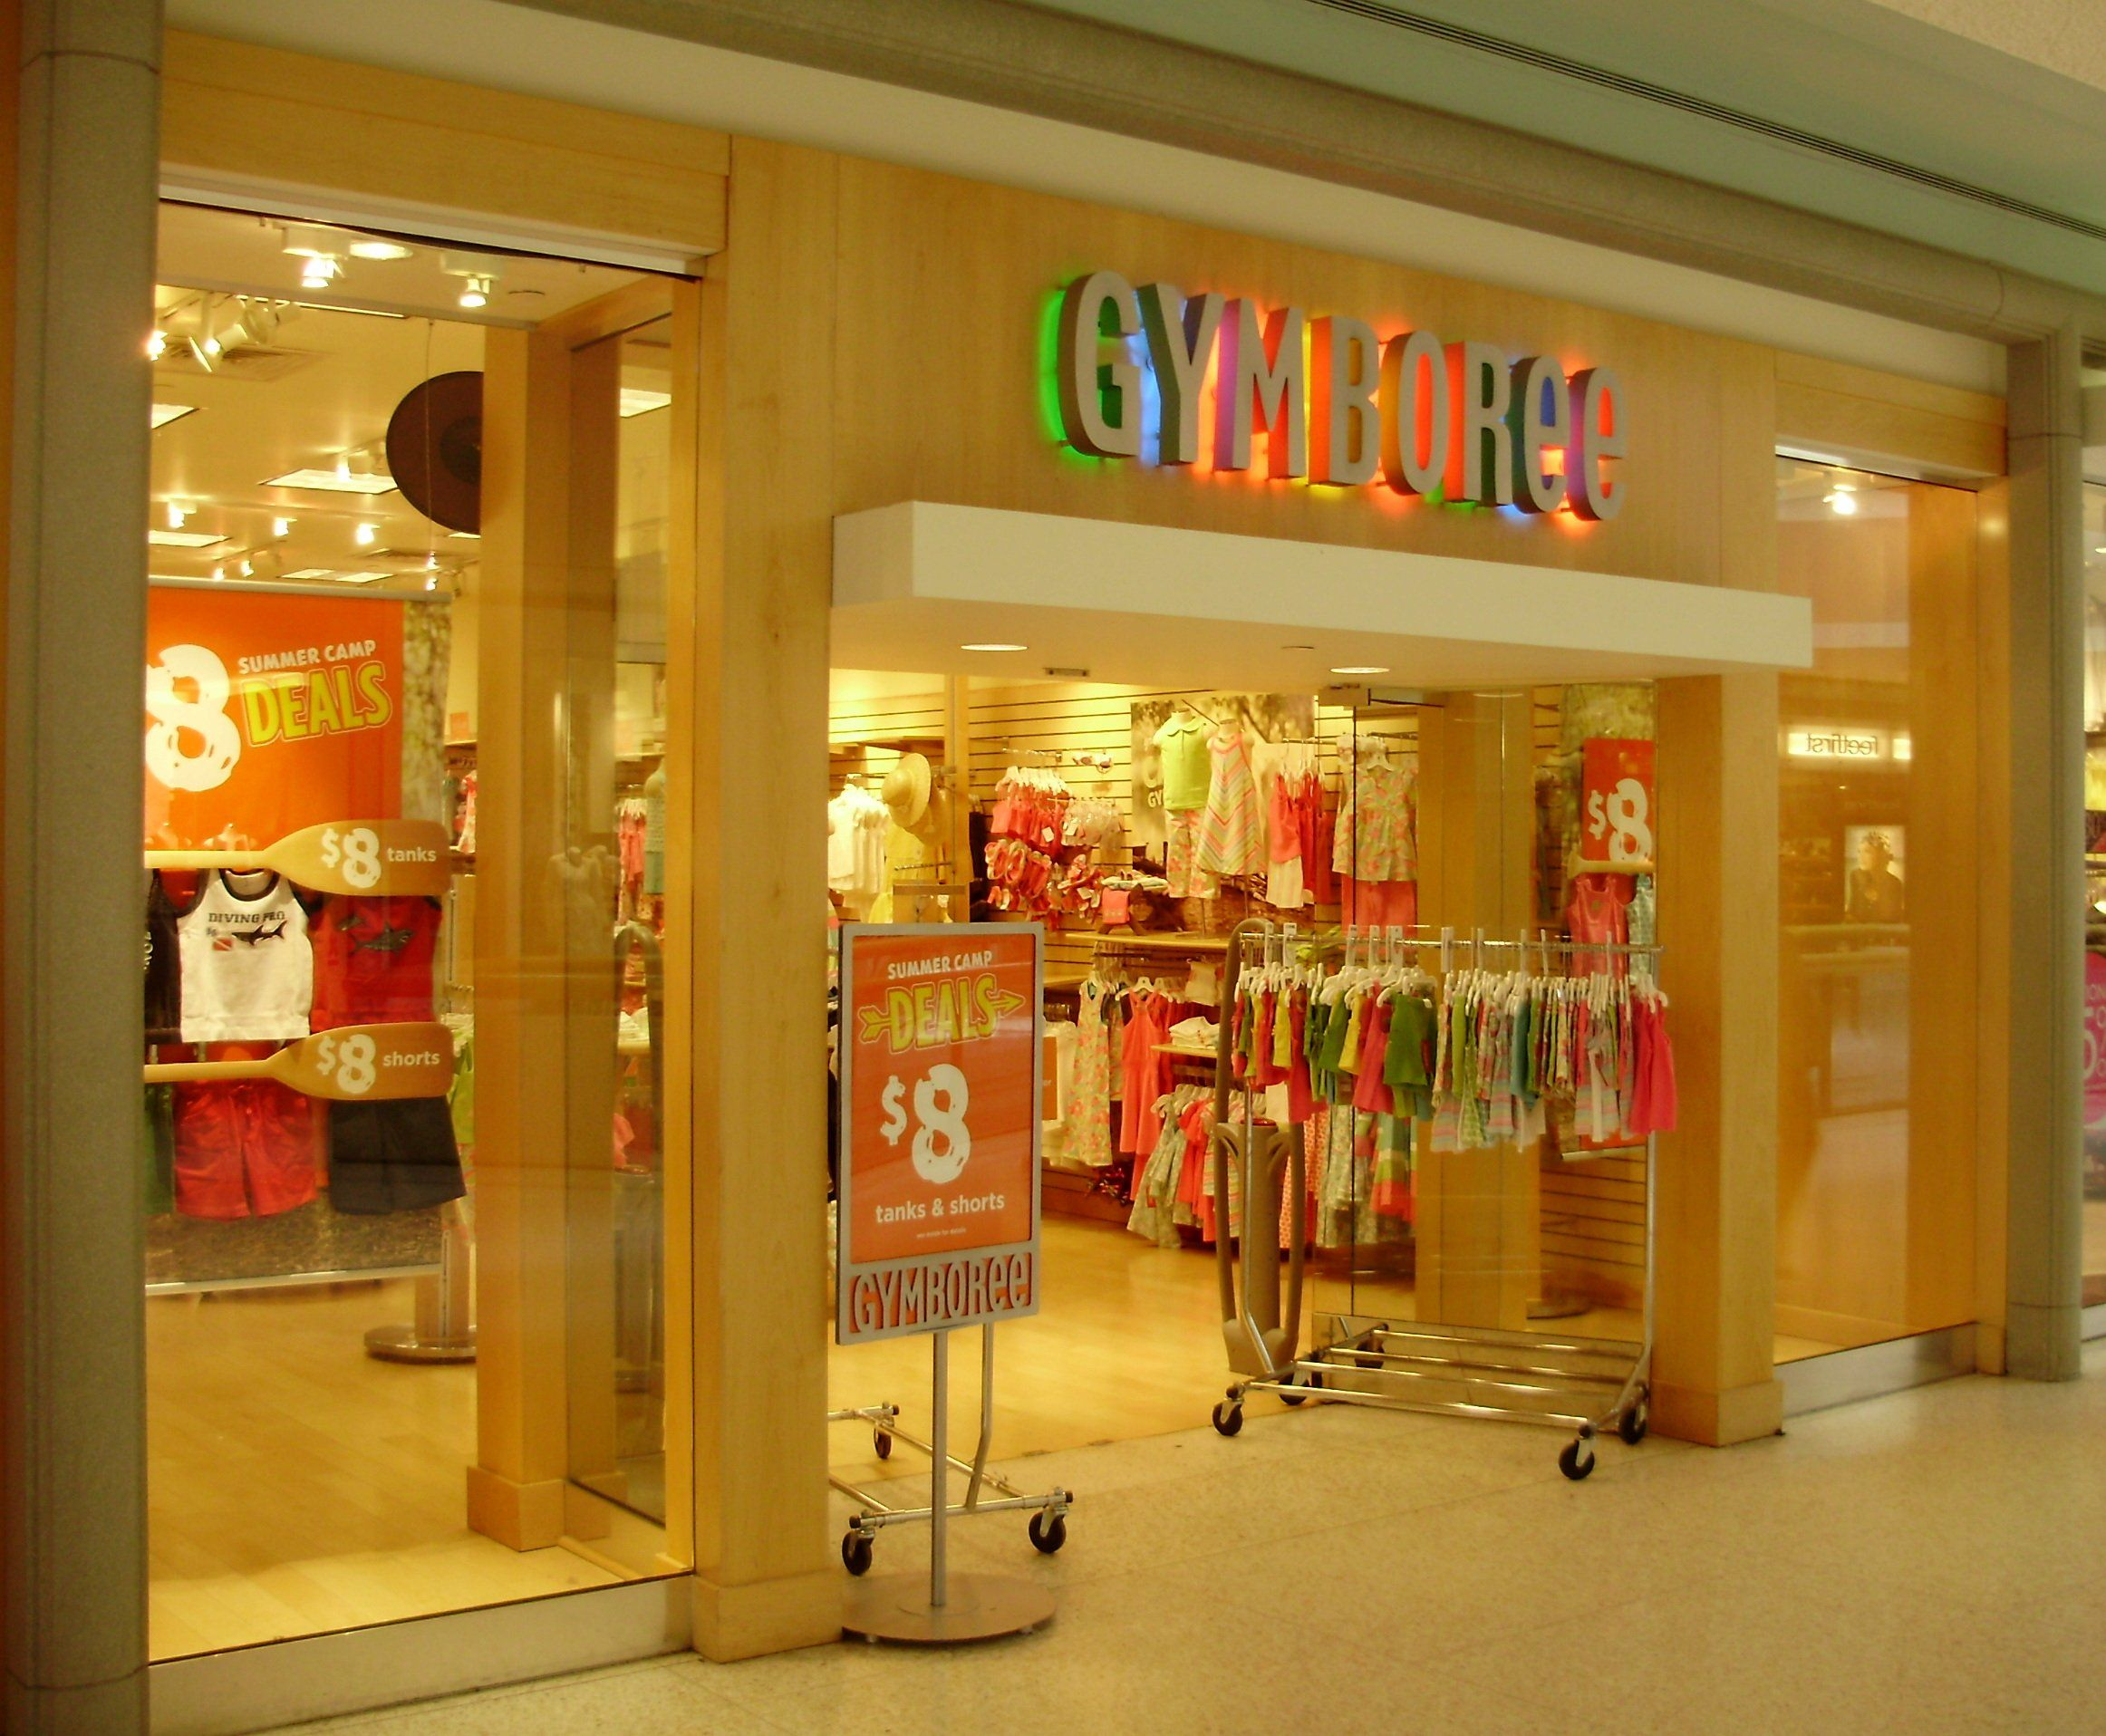 Where to Find Gymboree Coupons | Gymboree, Shops and Shopping